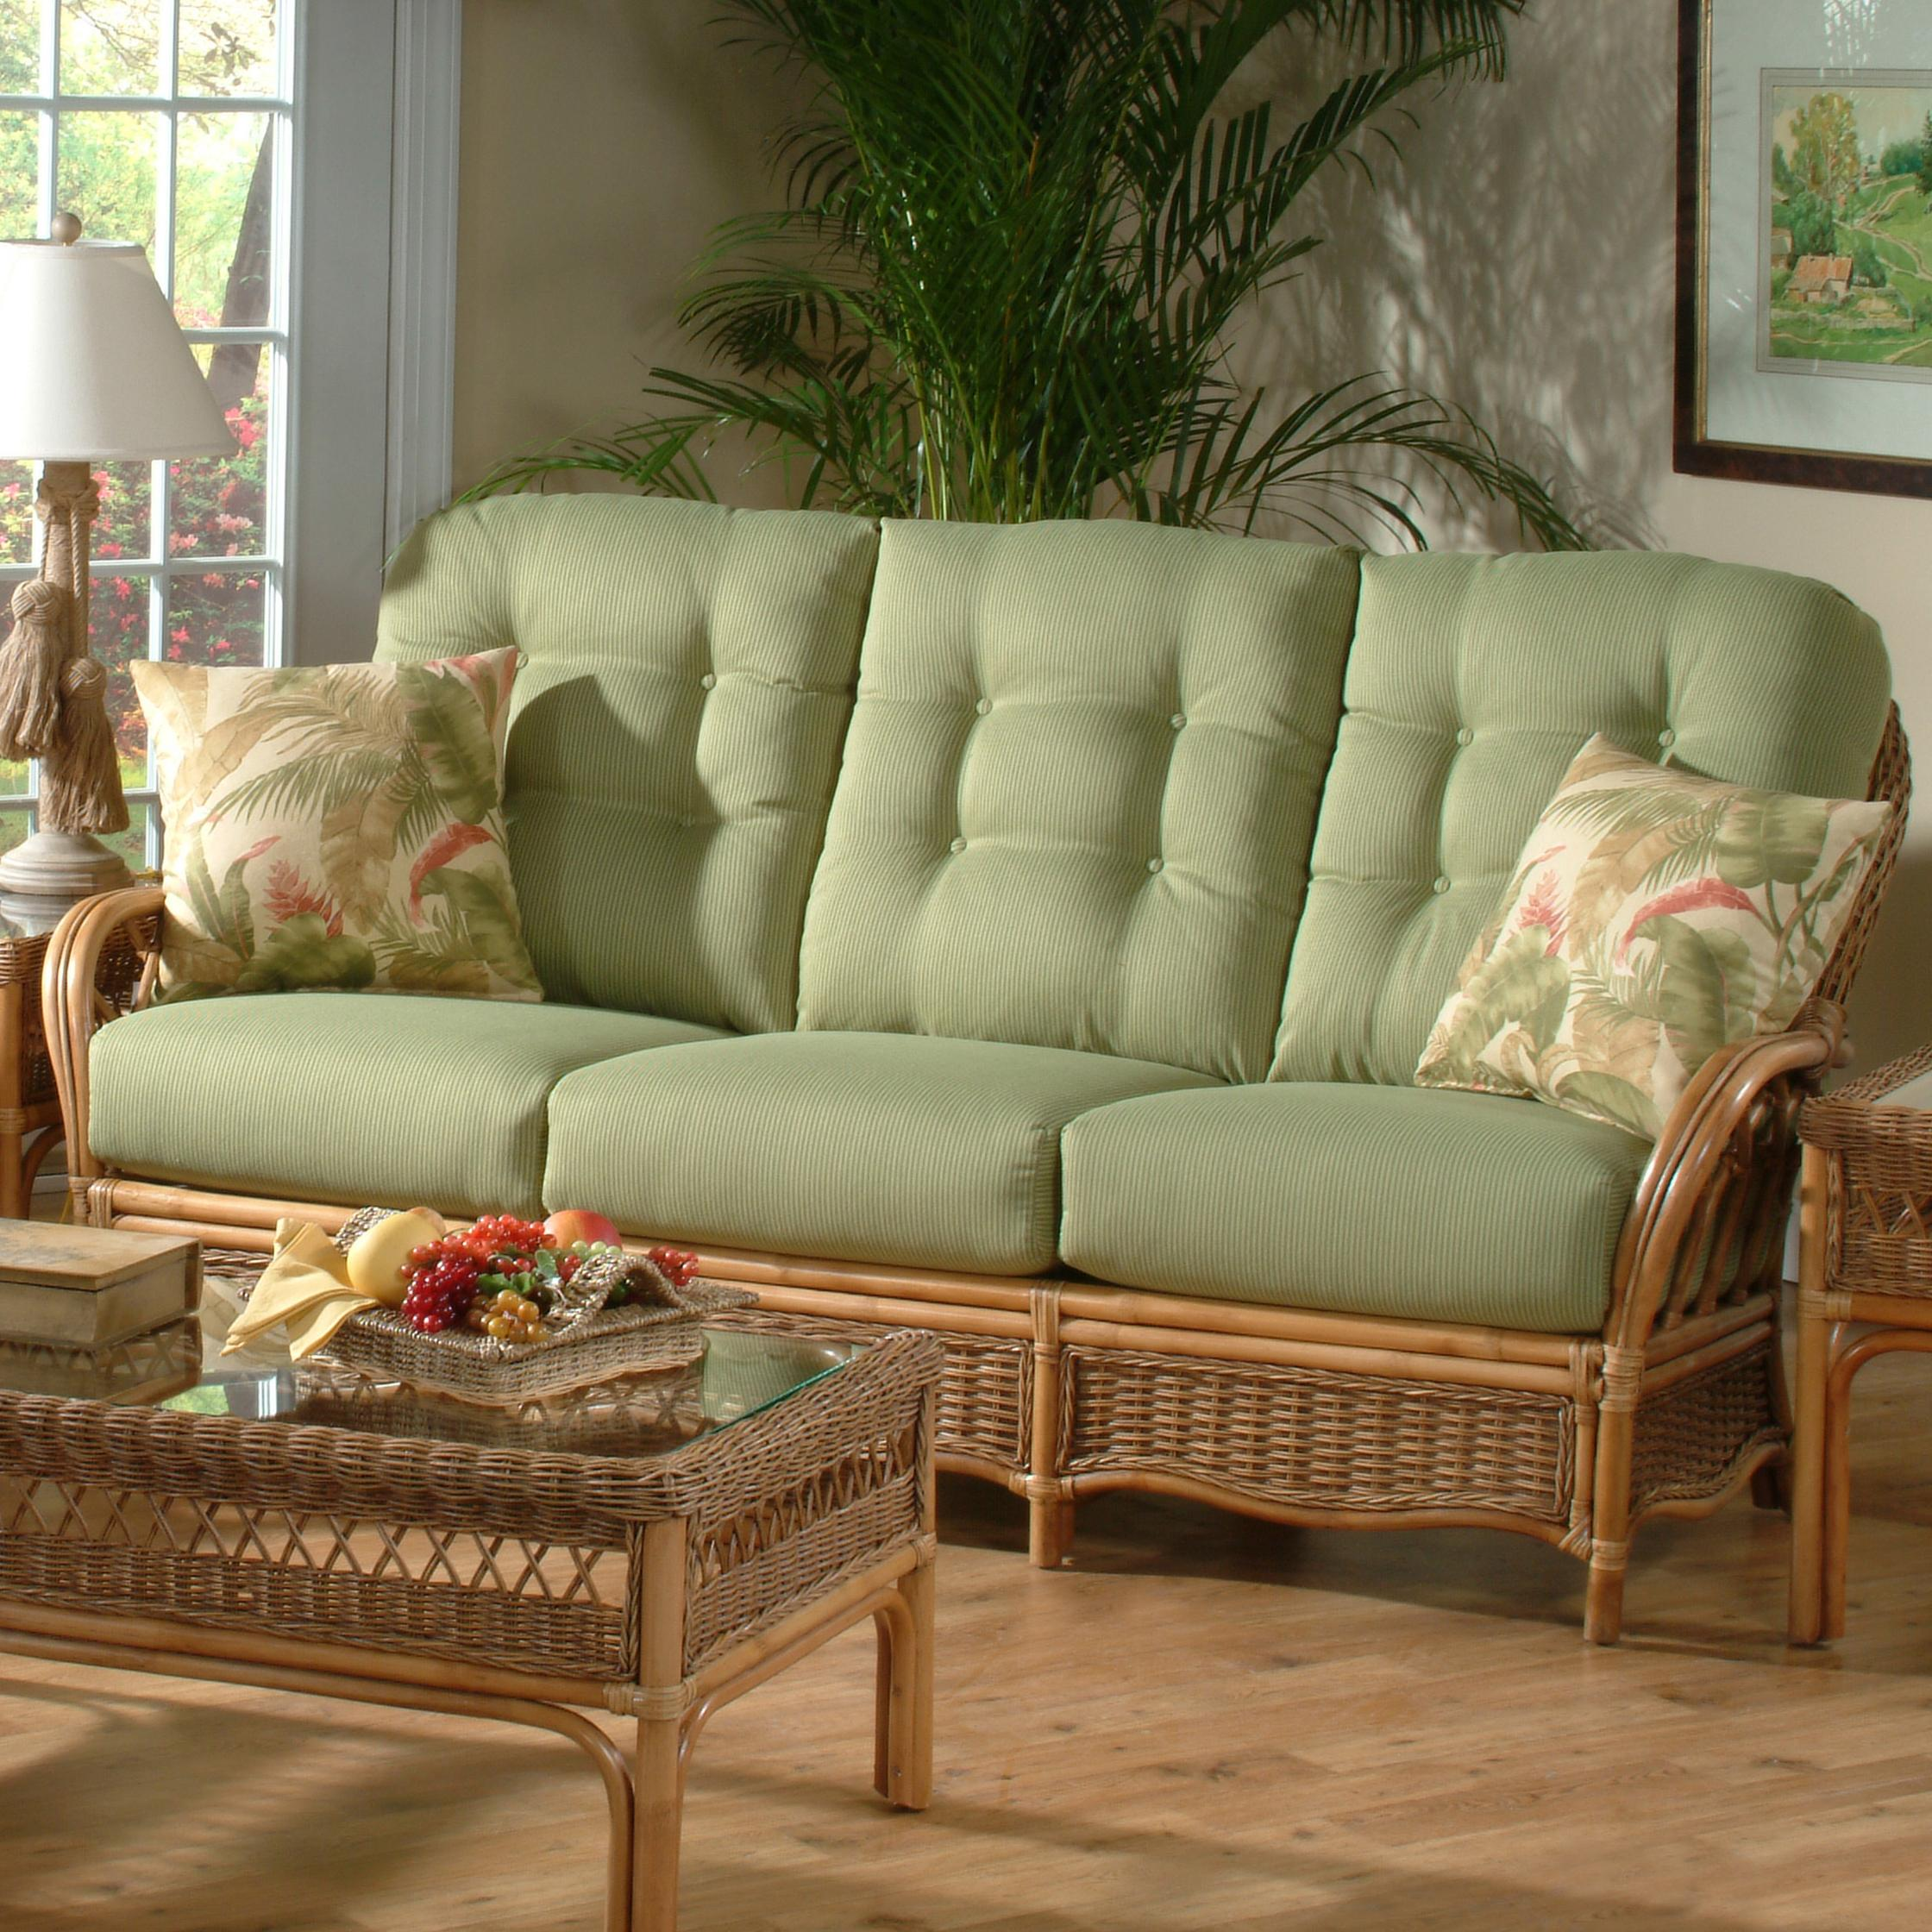 Everglade Rattan Sofa by Braxton Culler at Esprit Decor Home Furnishings